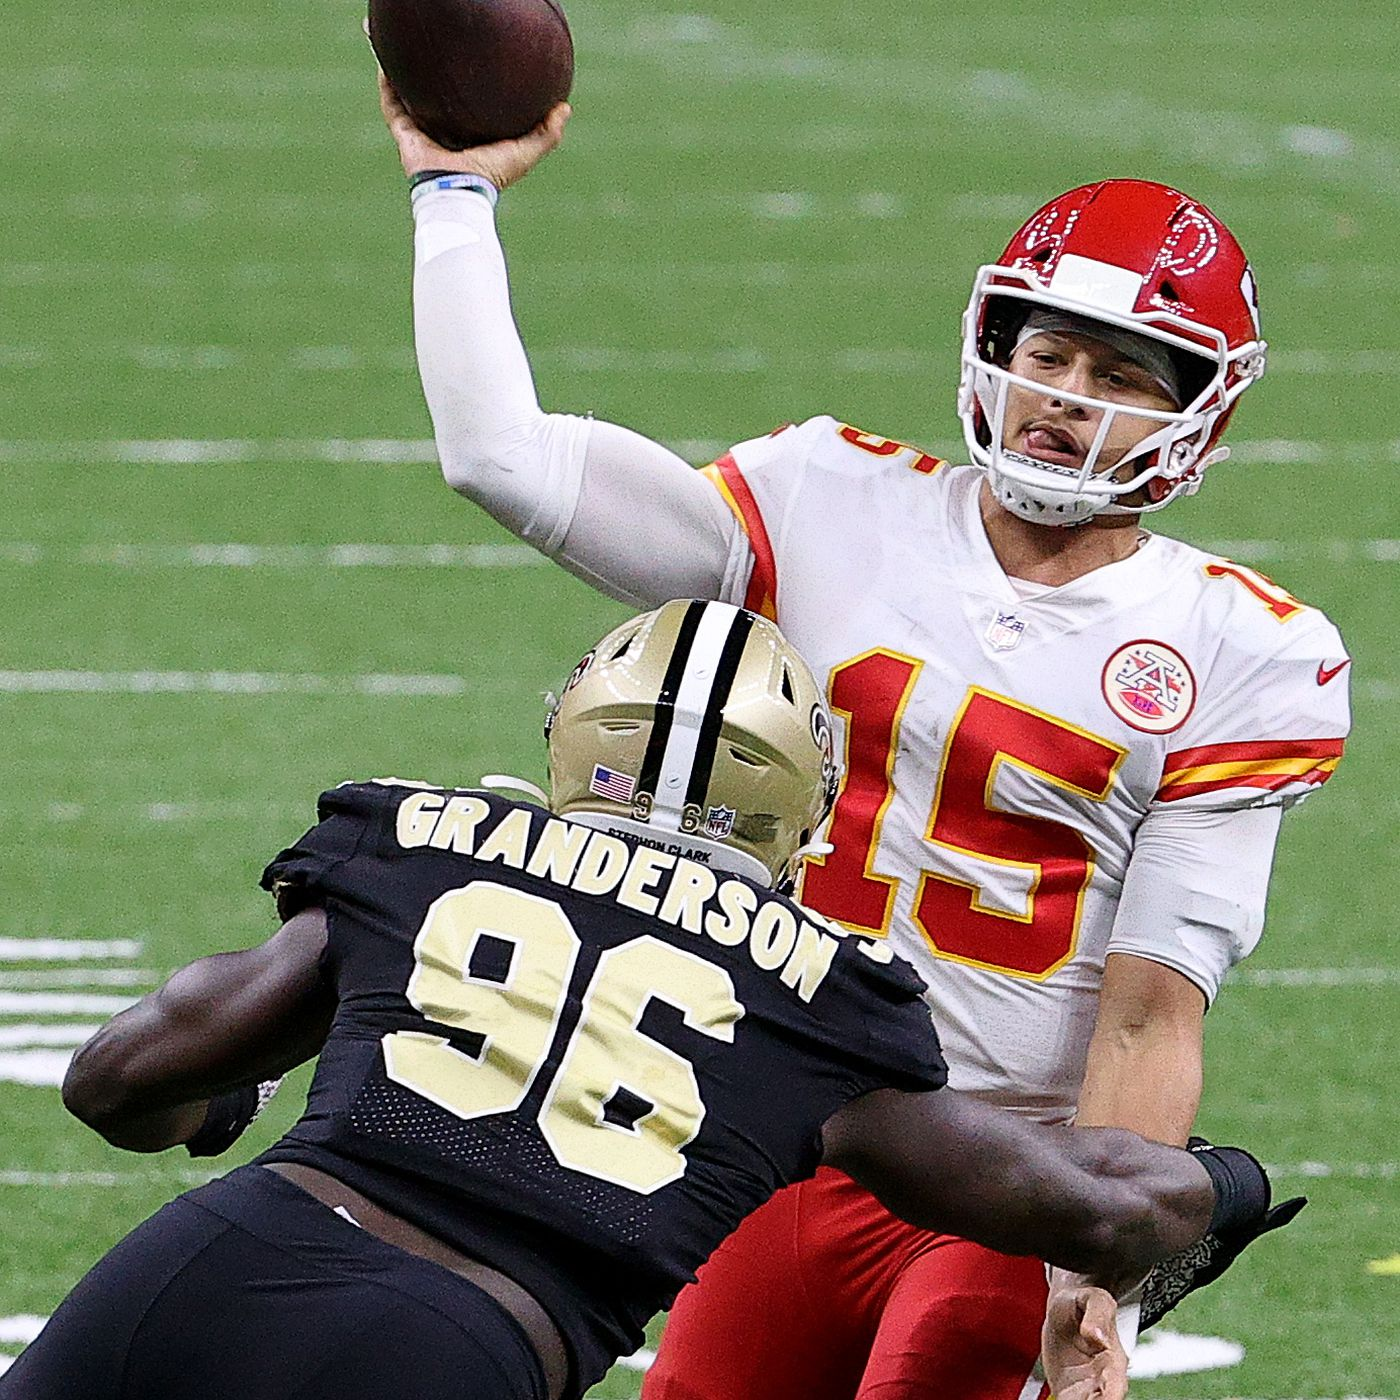 Nfl Power Rankings For Week 16 Kansas City Chiefs Poised To Repeat Mile High Report